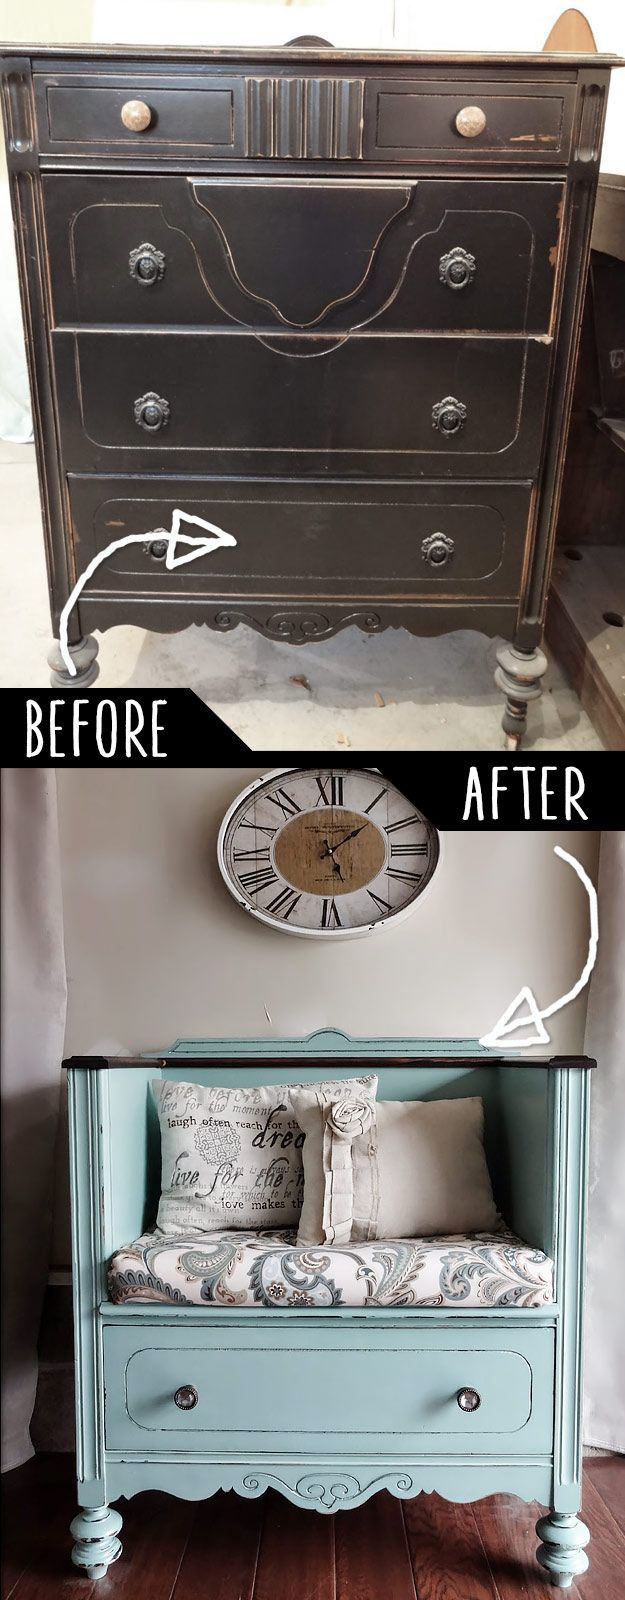 39 Clever DIY Furniture Hacks. Best 25  Diy bedroom decor ideas on Pinterest   Diy bedroom